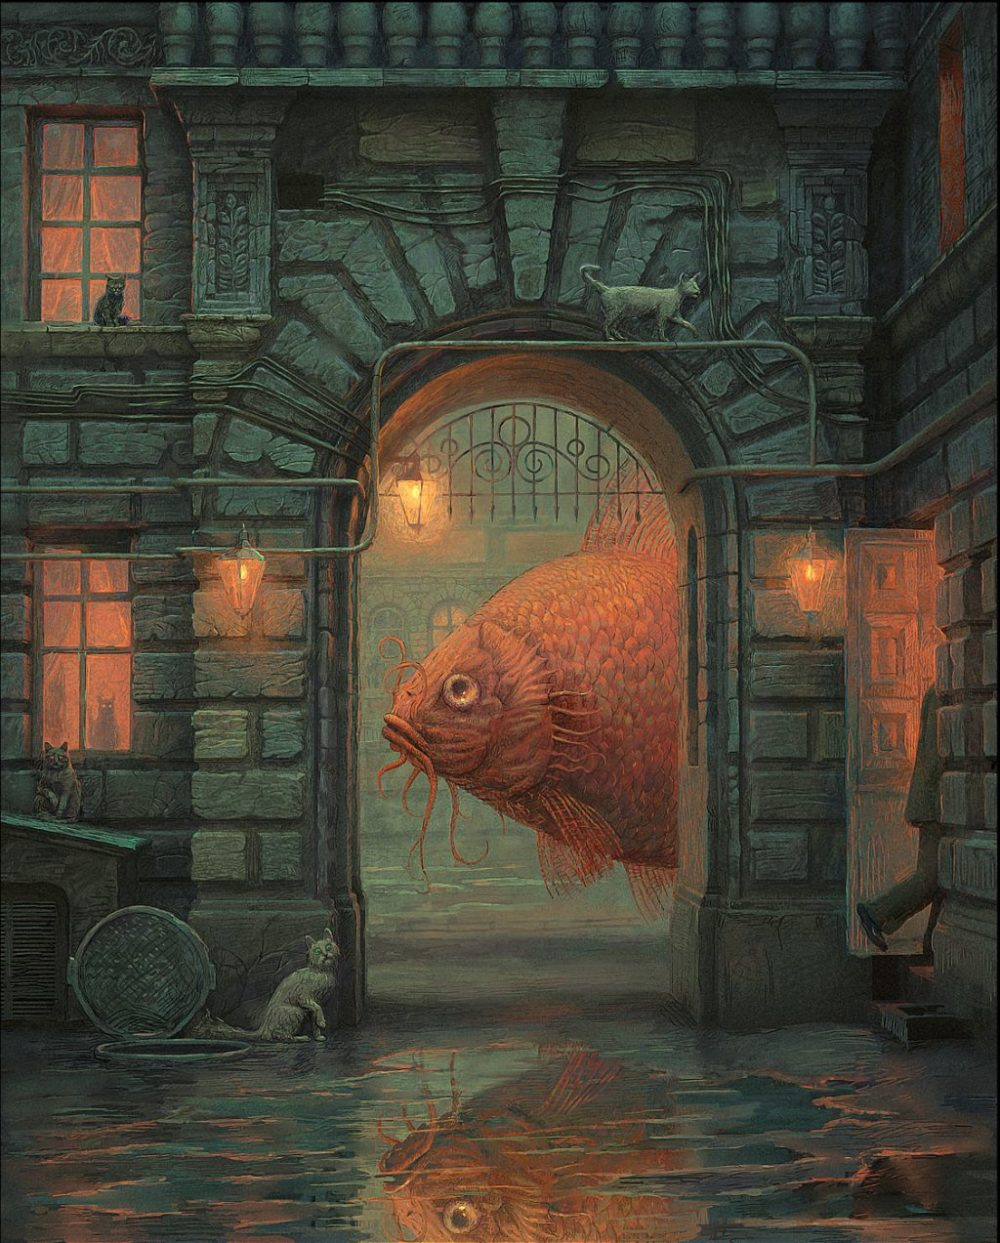 Surreal And Imaginative Book Illustrations By Andrew Ferez 6